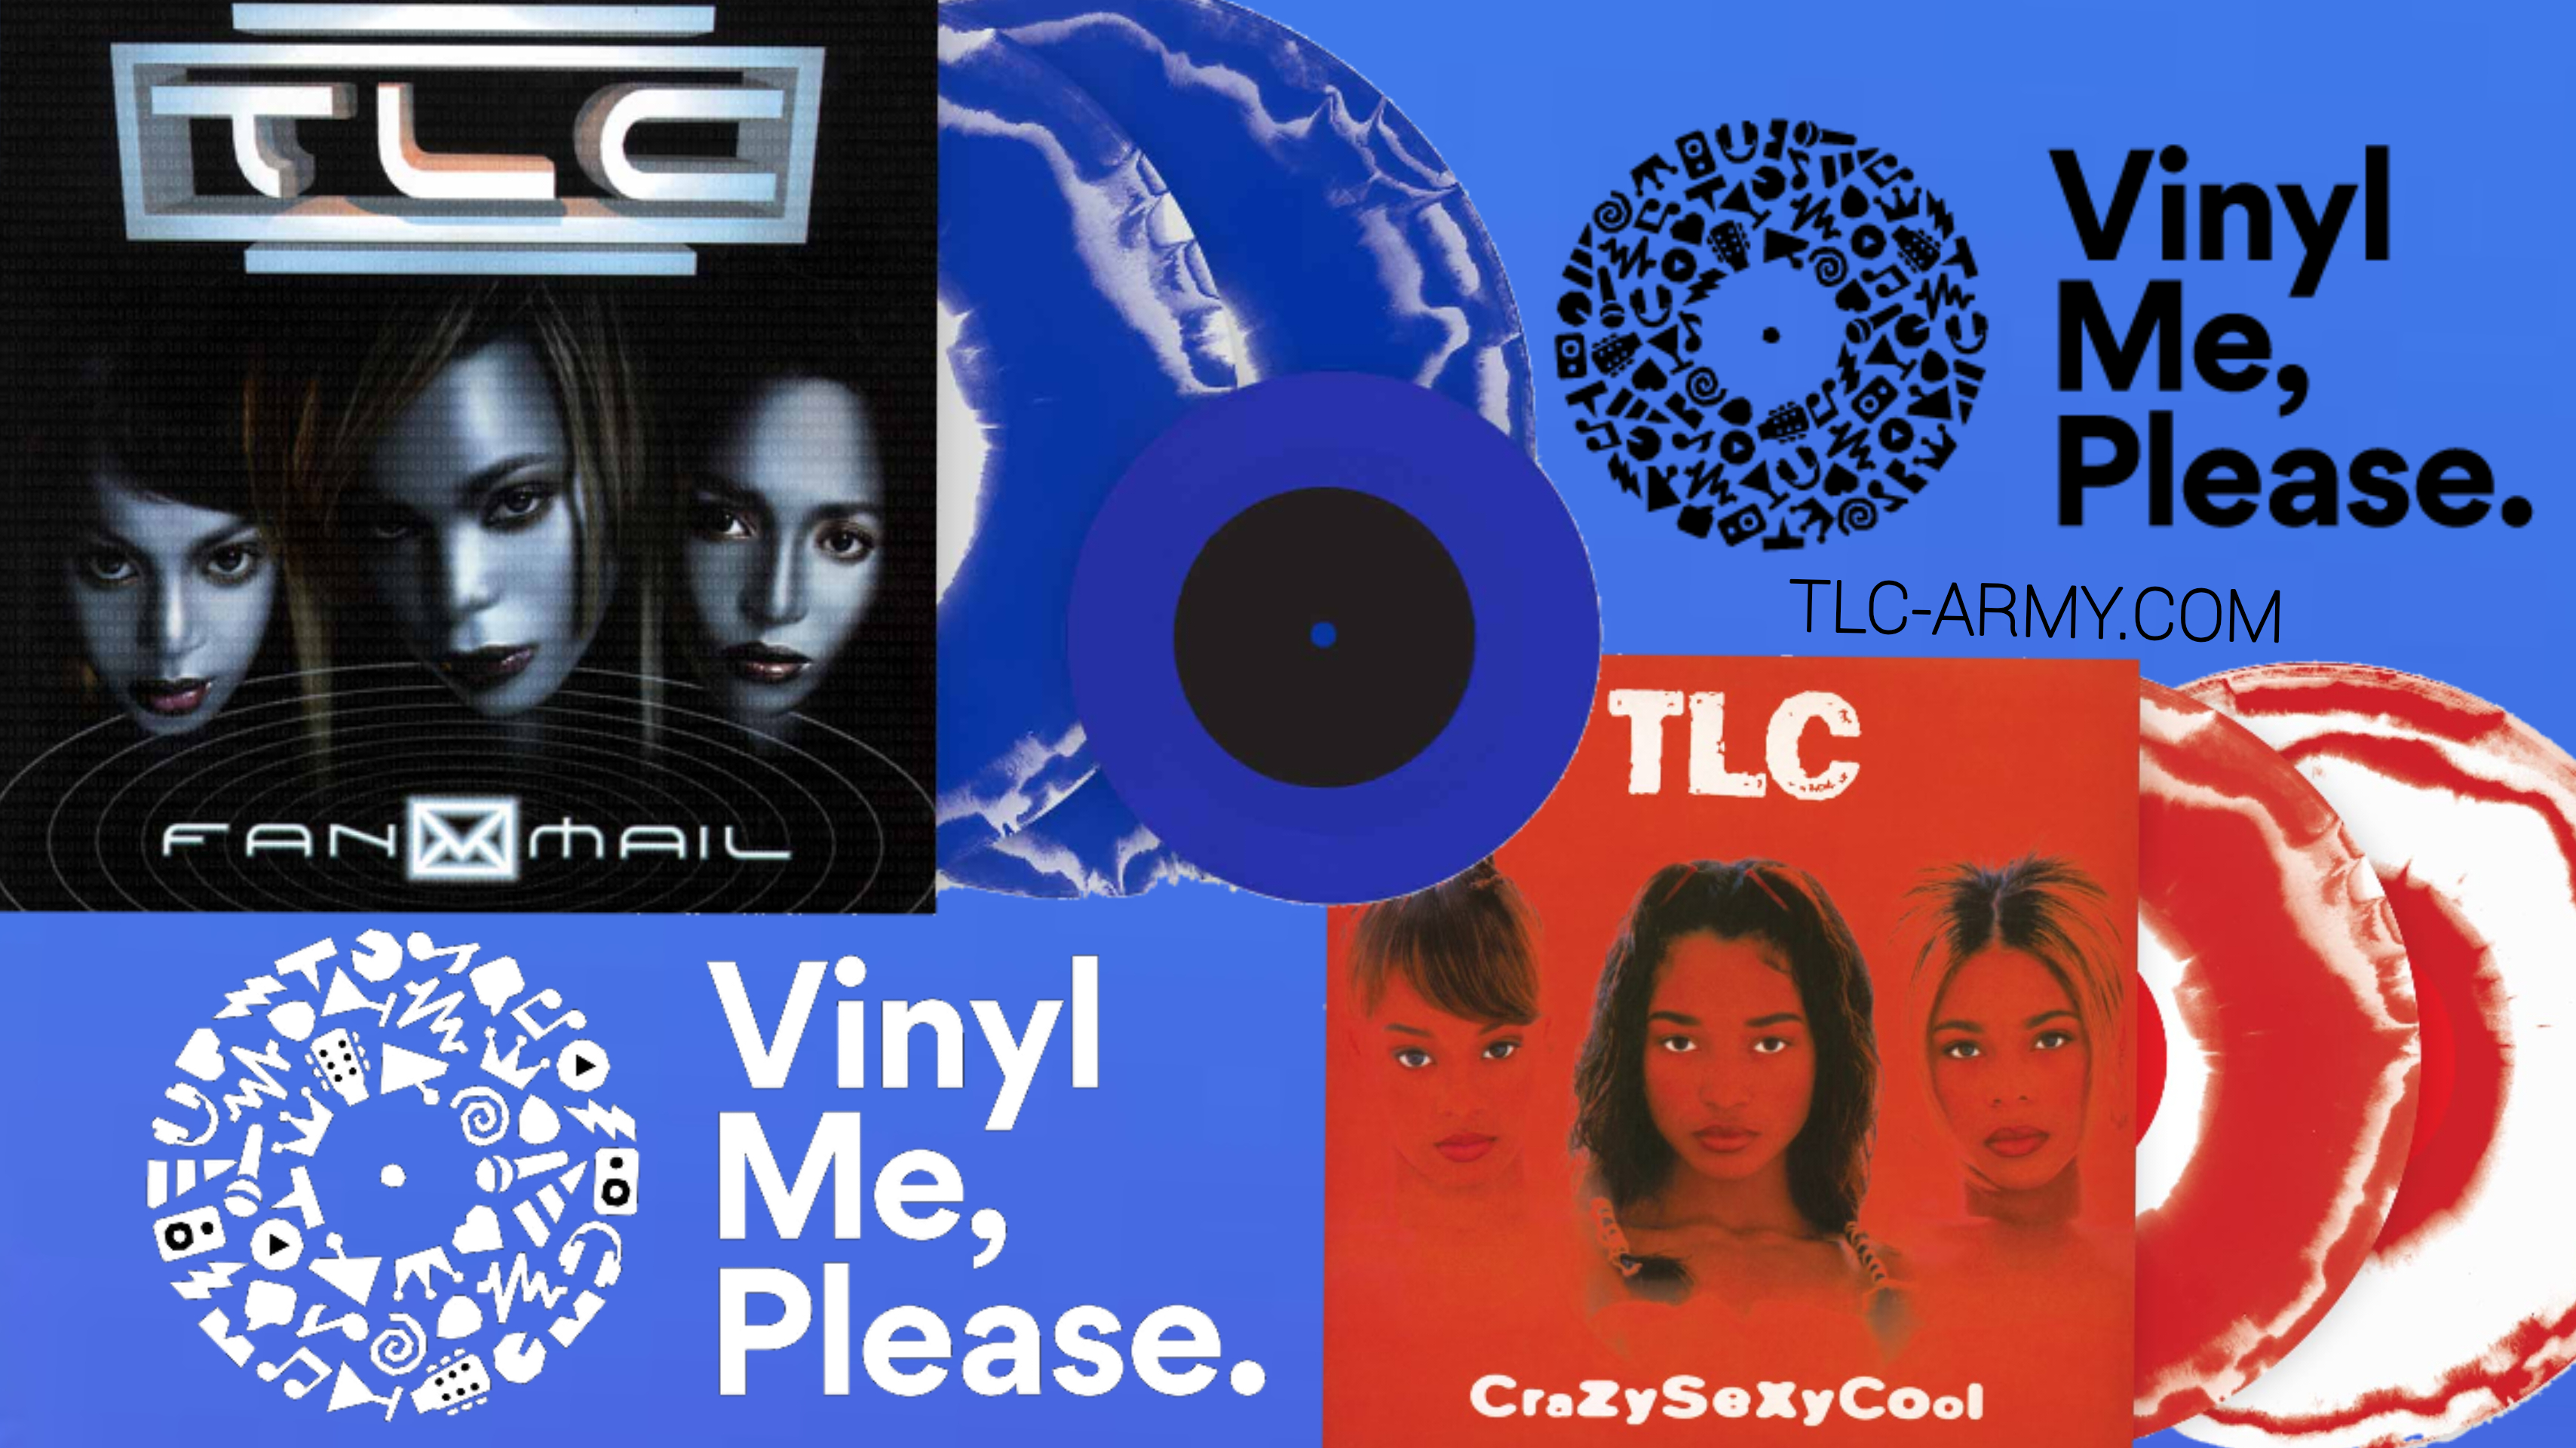 TLC Limited Edition Albums Released Exclusively on Vinyl Me, Please